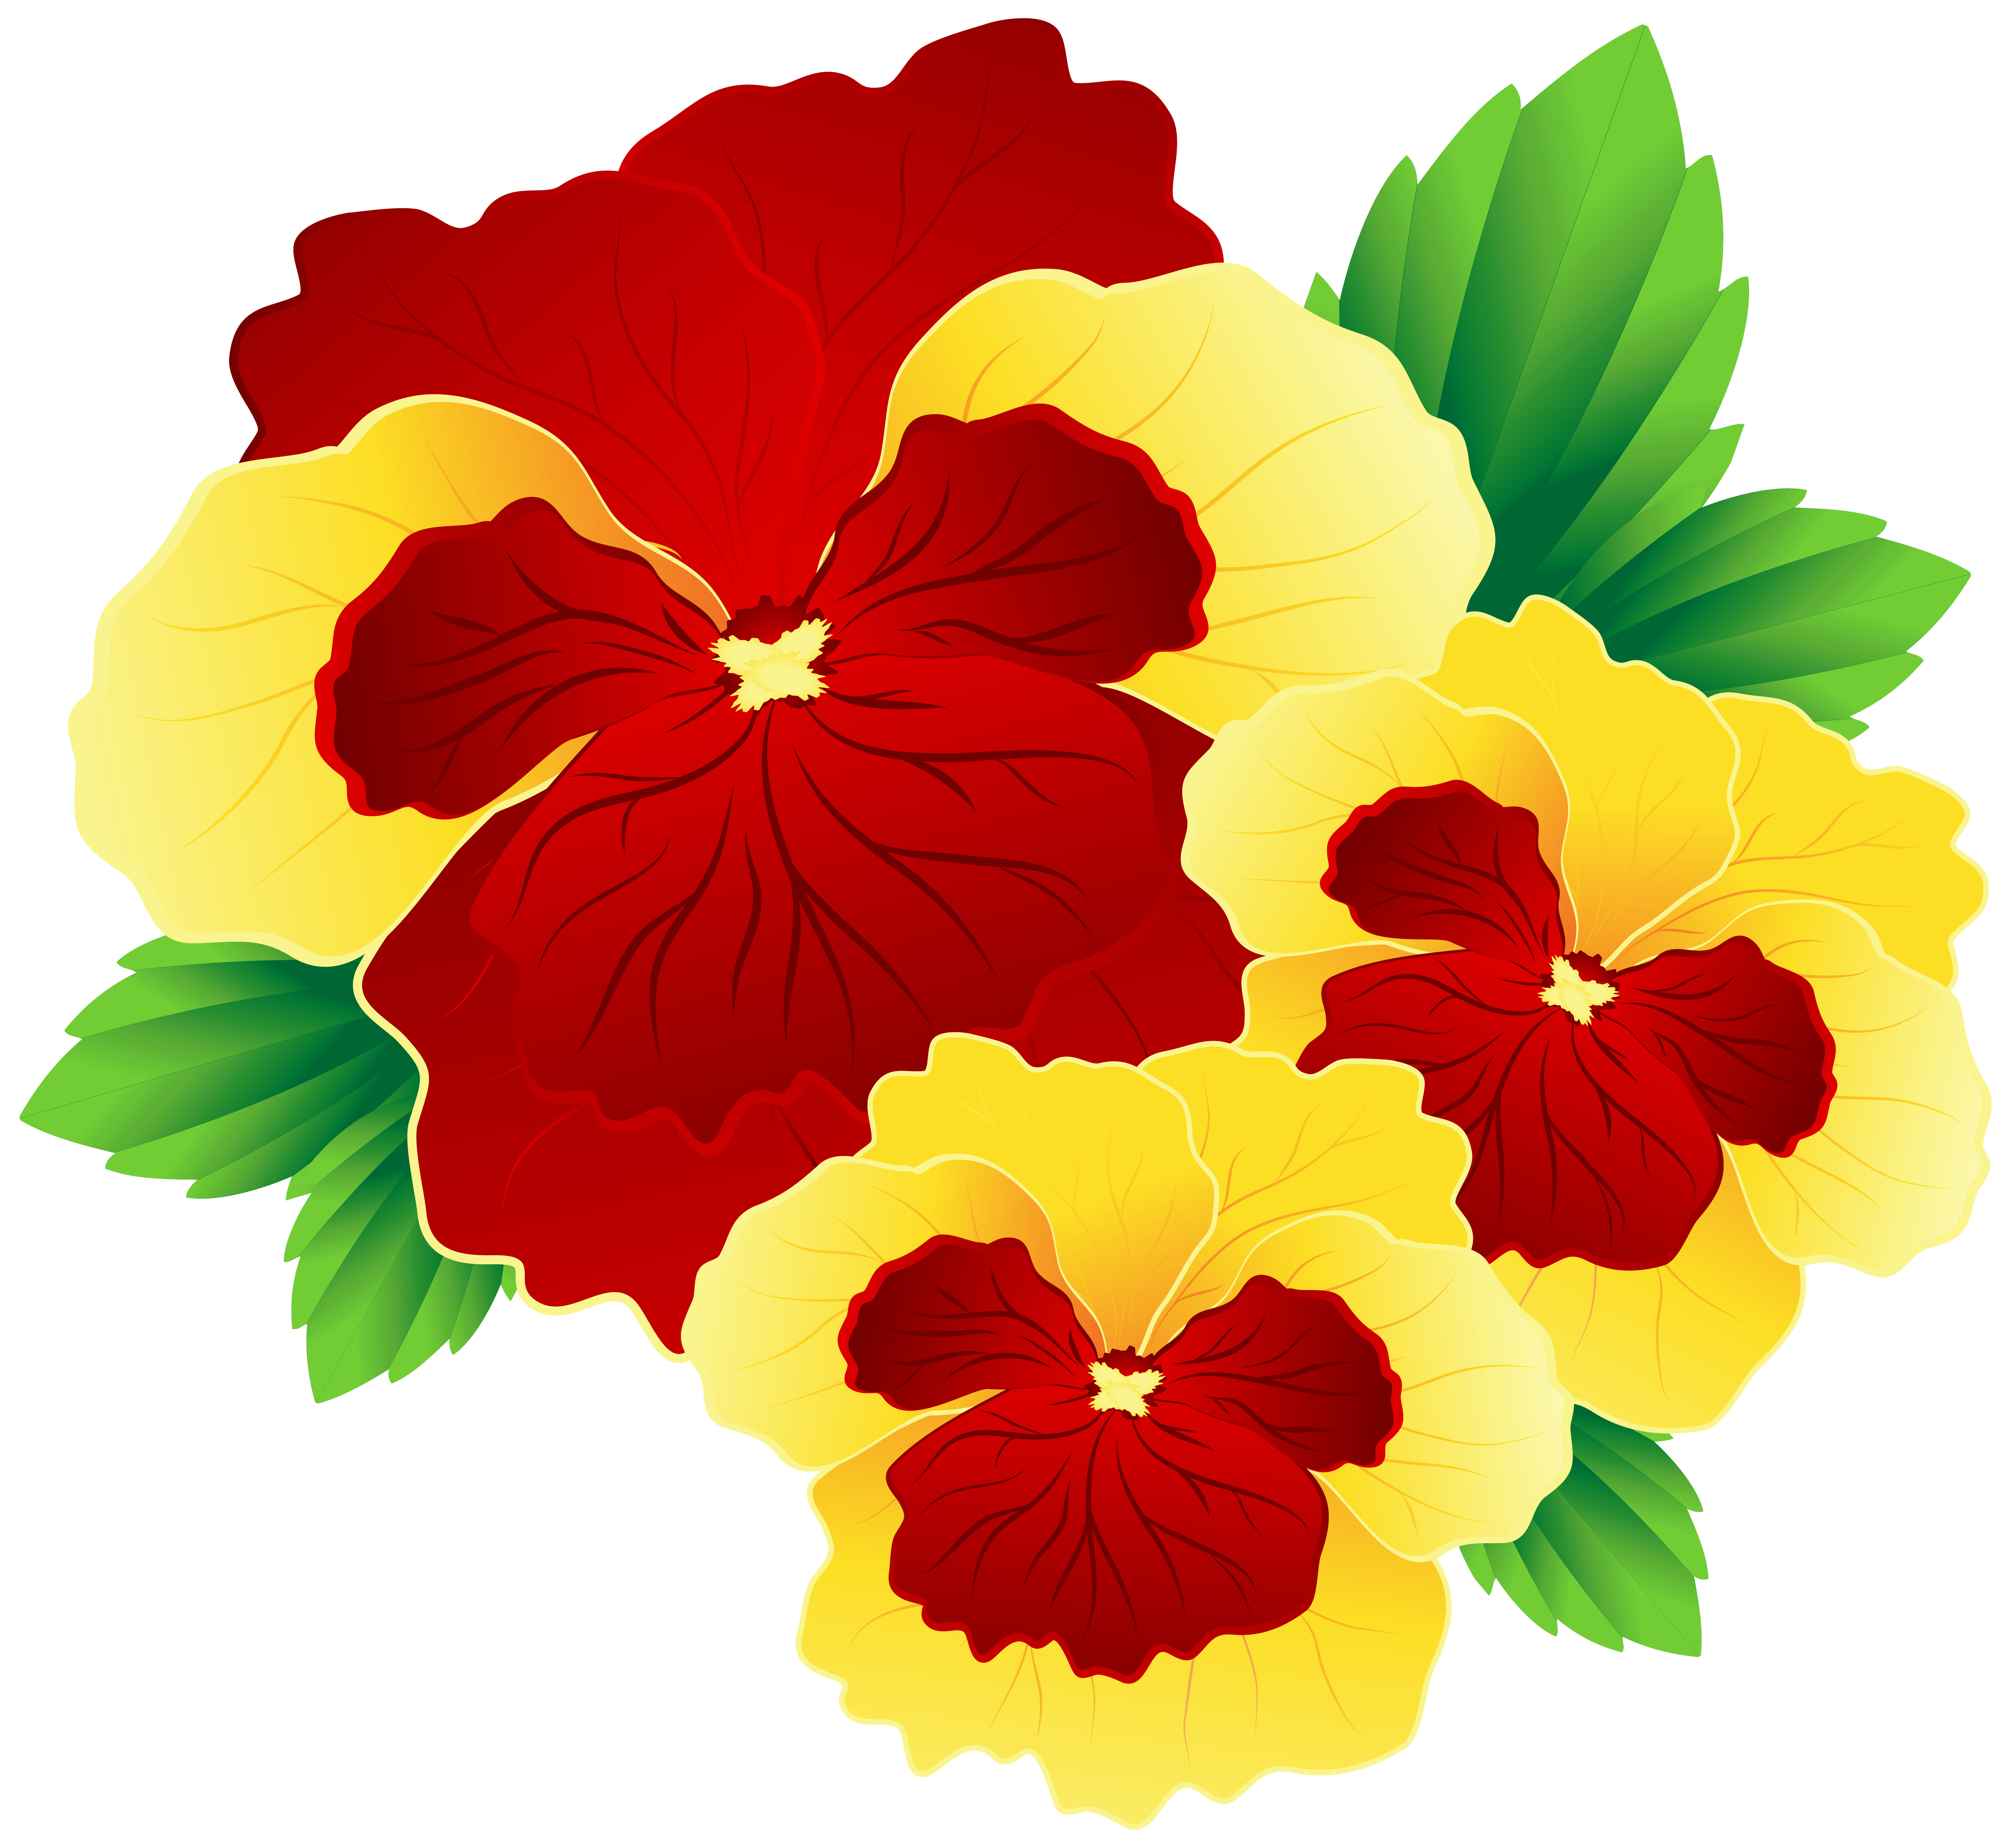 Hibiscus bouquet png. Red and yellow pansies